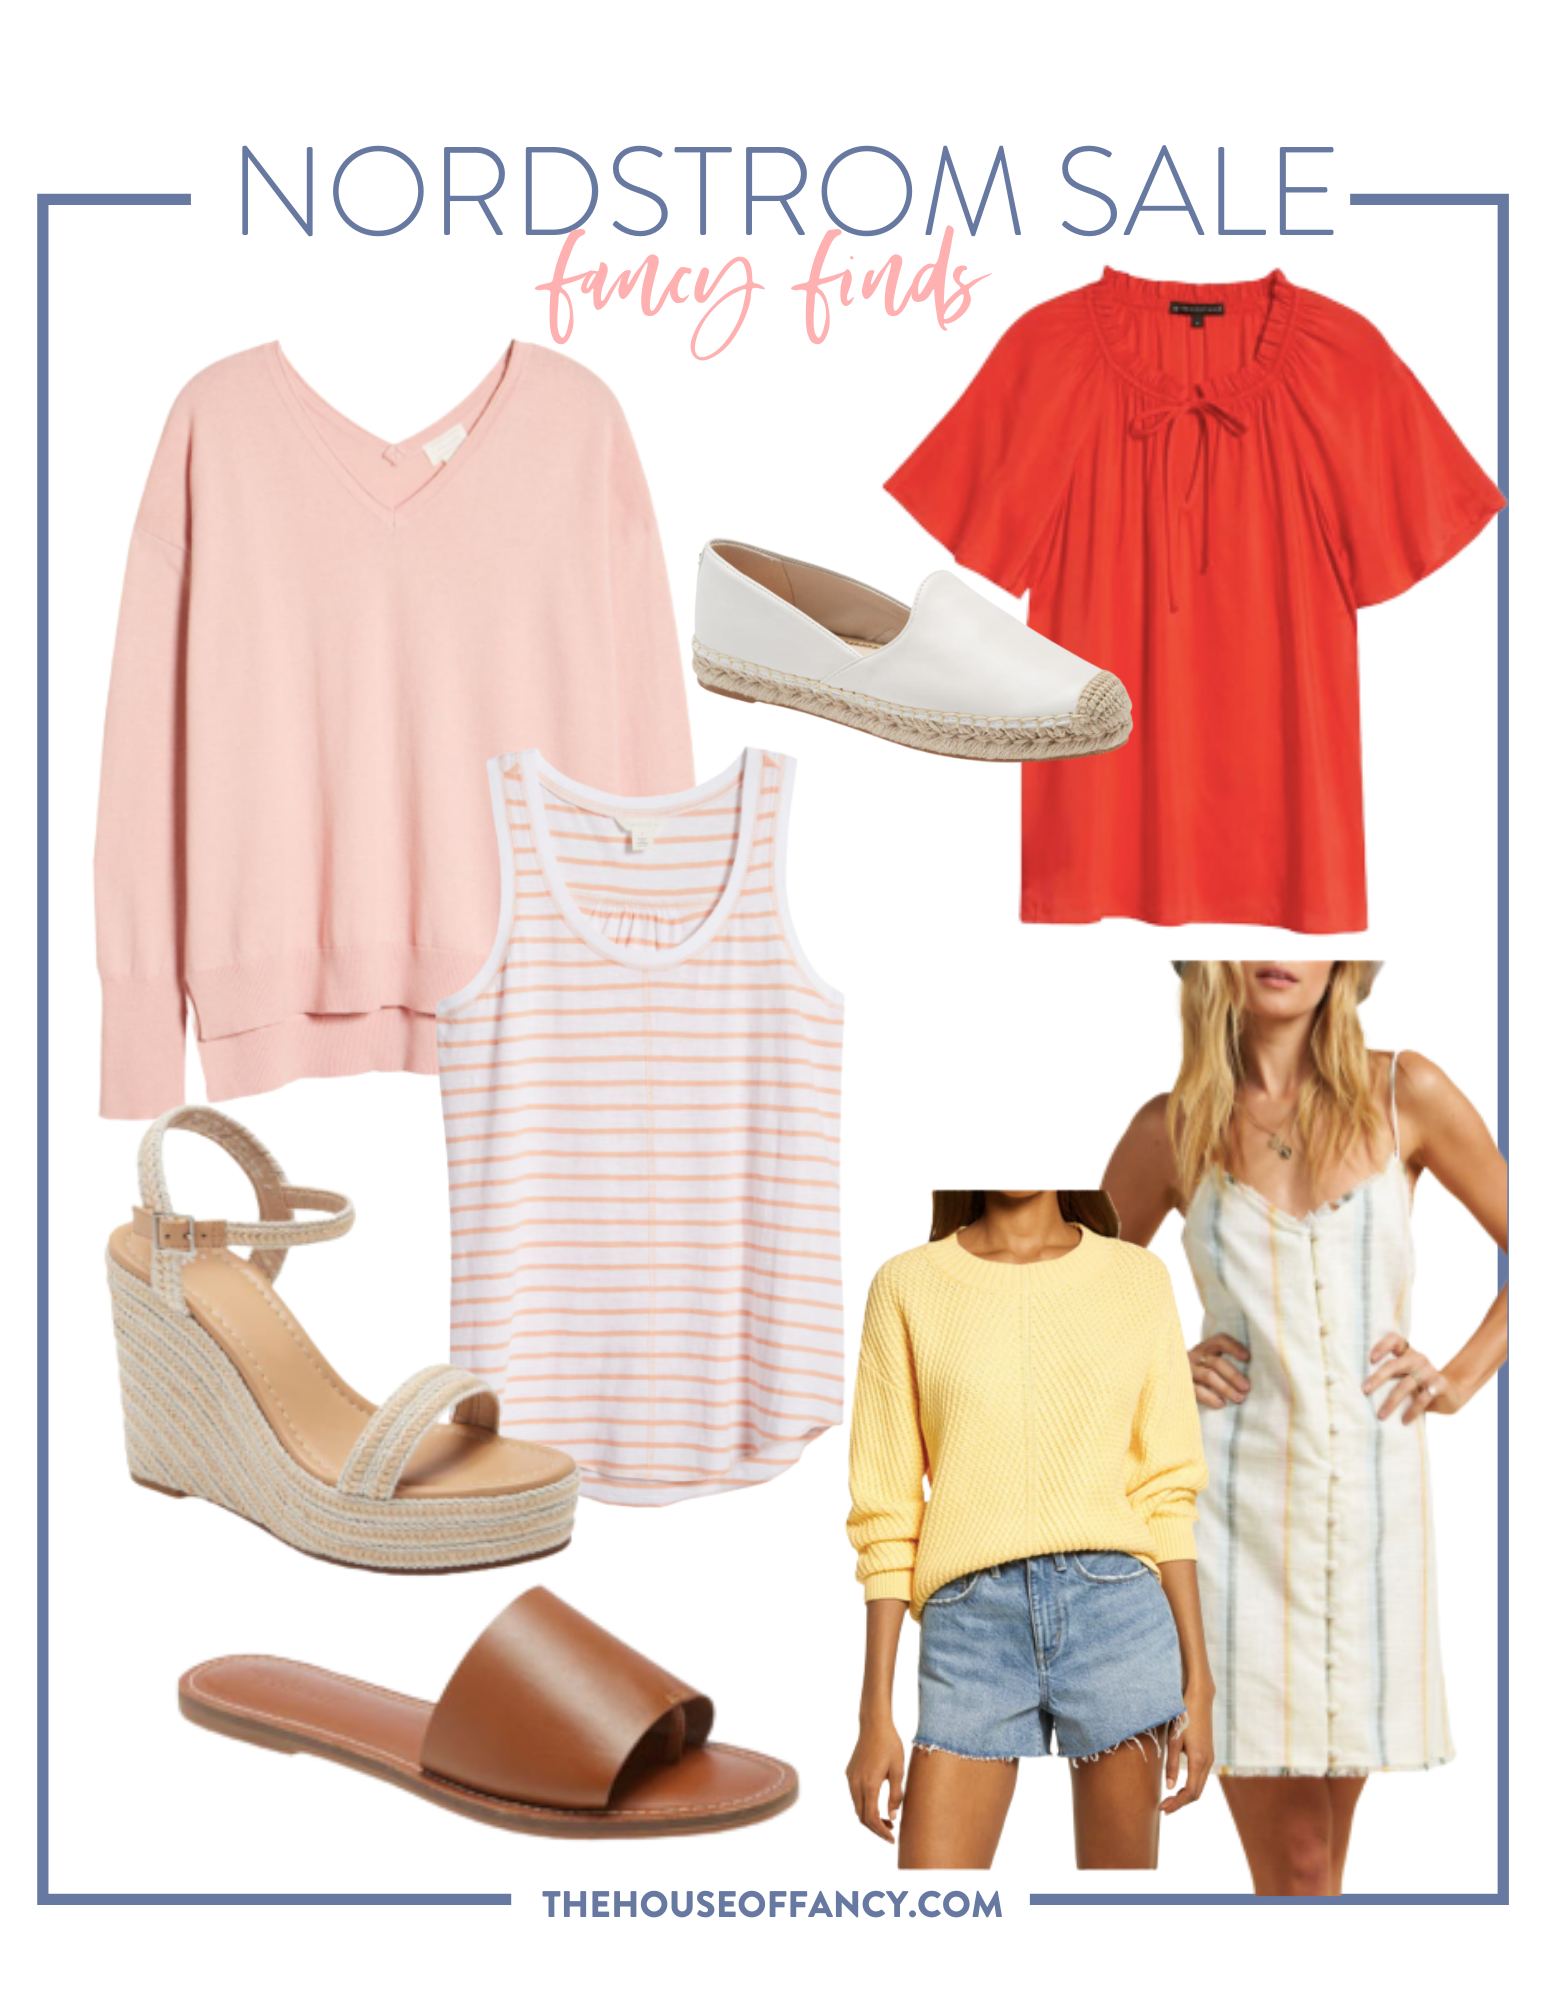 Memorial Day Sales by popular Houston life and style blog, The House of Fancy: collage image of Nordstrom sweater, Nordstrom striped tank top, Nordstrom peasant blouse, Nordstrom white espadrilles, Nordstrom wedge platform sandals, Nordstrom yellow sweater, Nordstrom  white striped dress, and Nordstrom brown slide sandals.